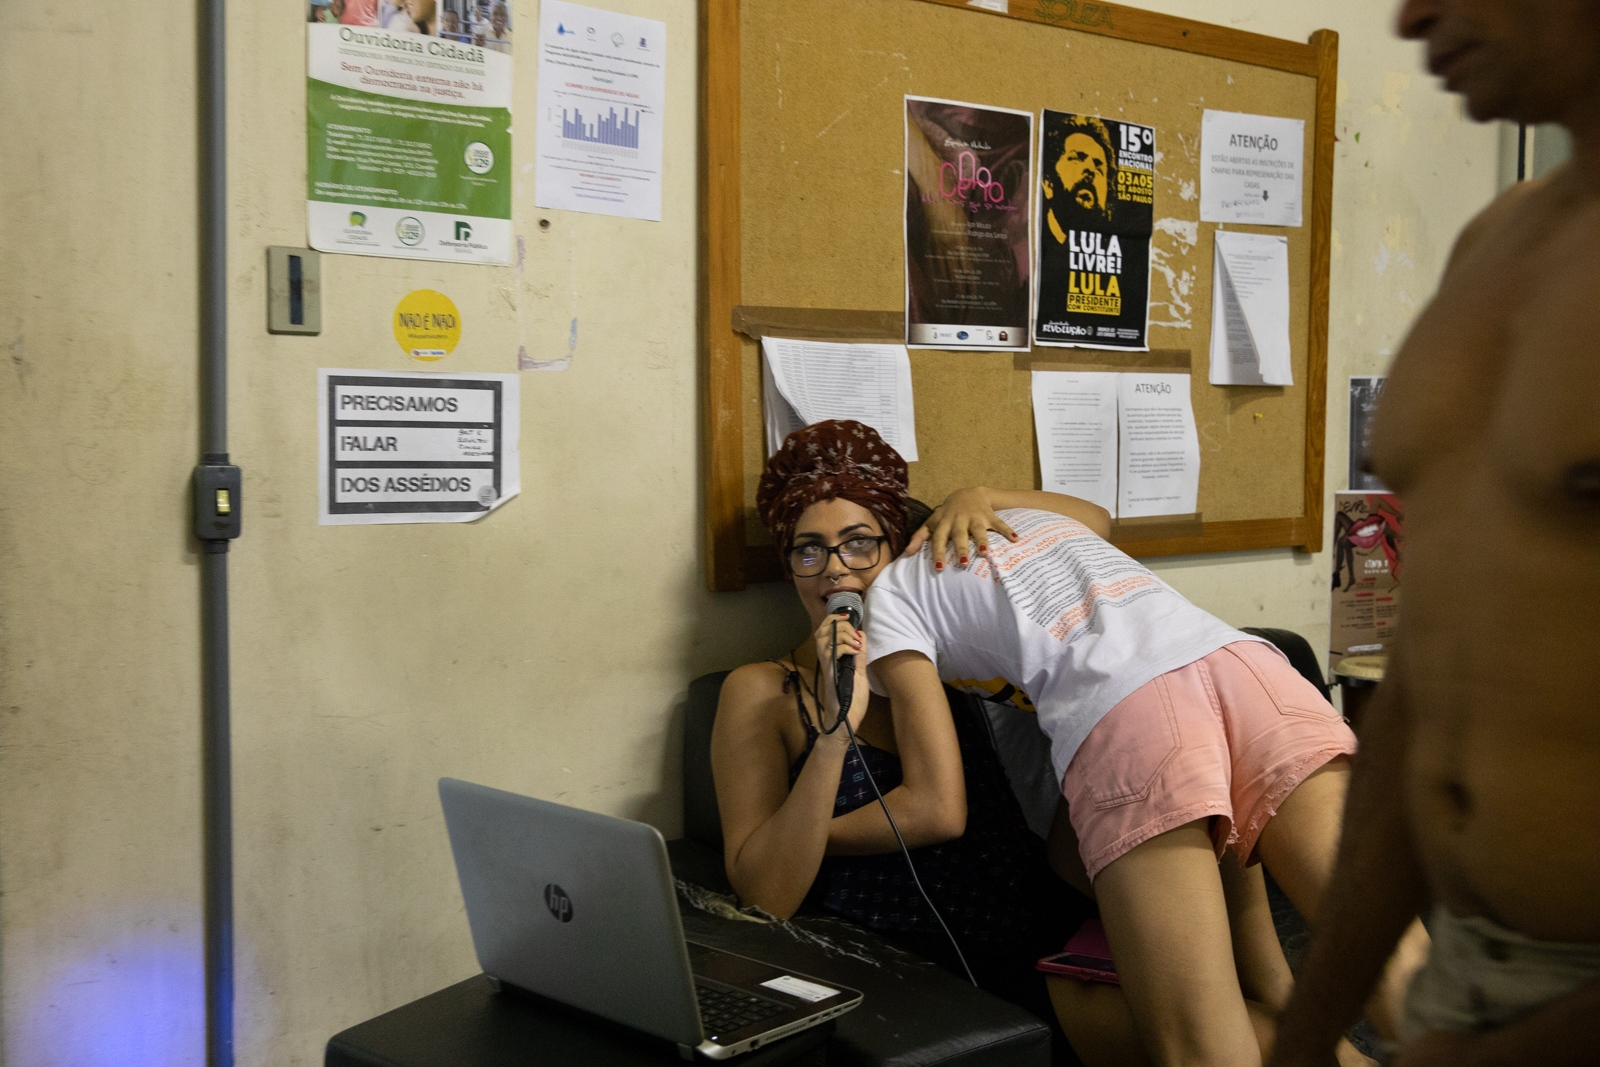 Jeane, 23, holds a friend at the University of Bahia Student's Residence. As a trans woman and student on Arts, Jeanne fights for her gender state and create cultural meetings and events around LGBT mouvement fights. Salvador.